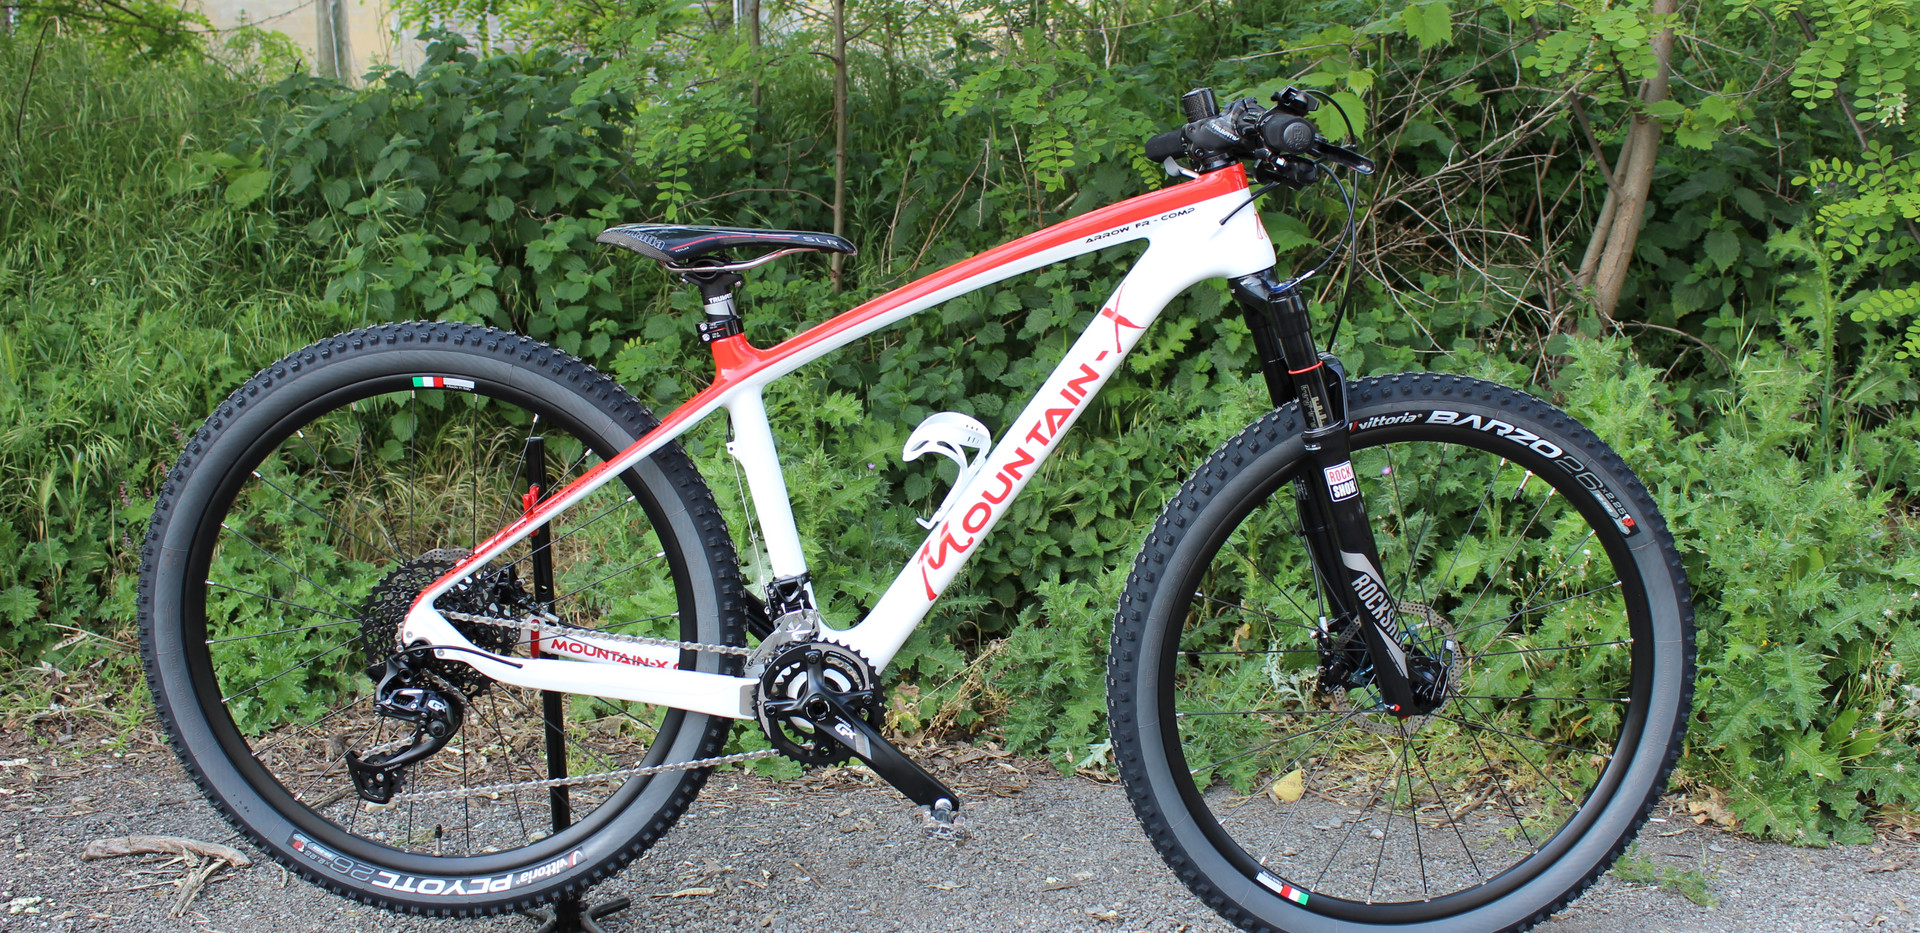 650B bianco rosso front 02